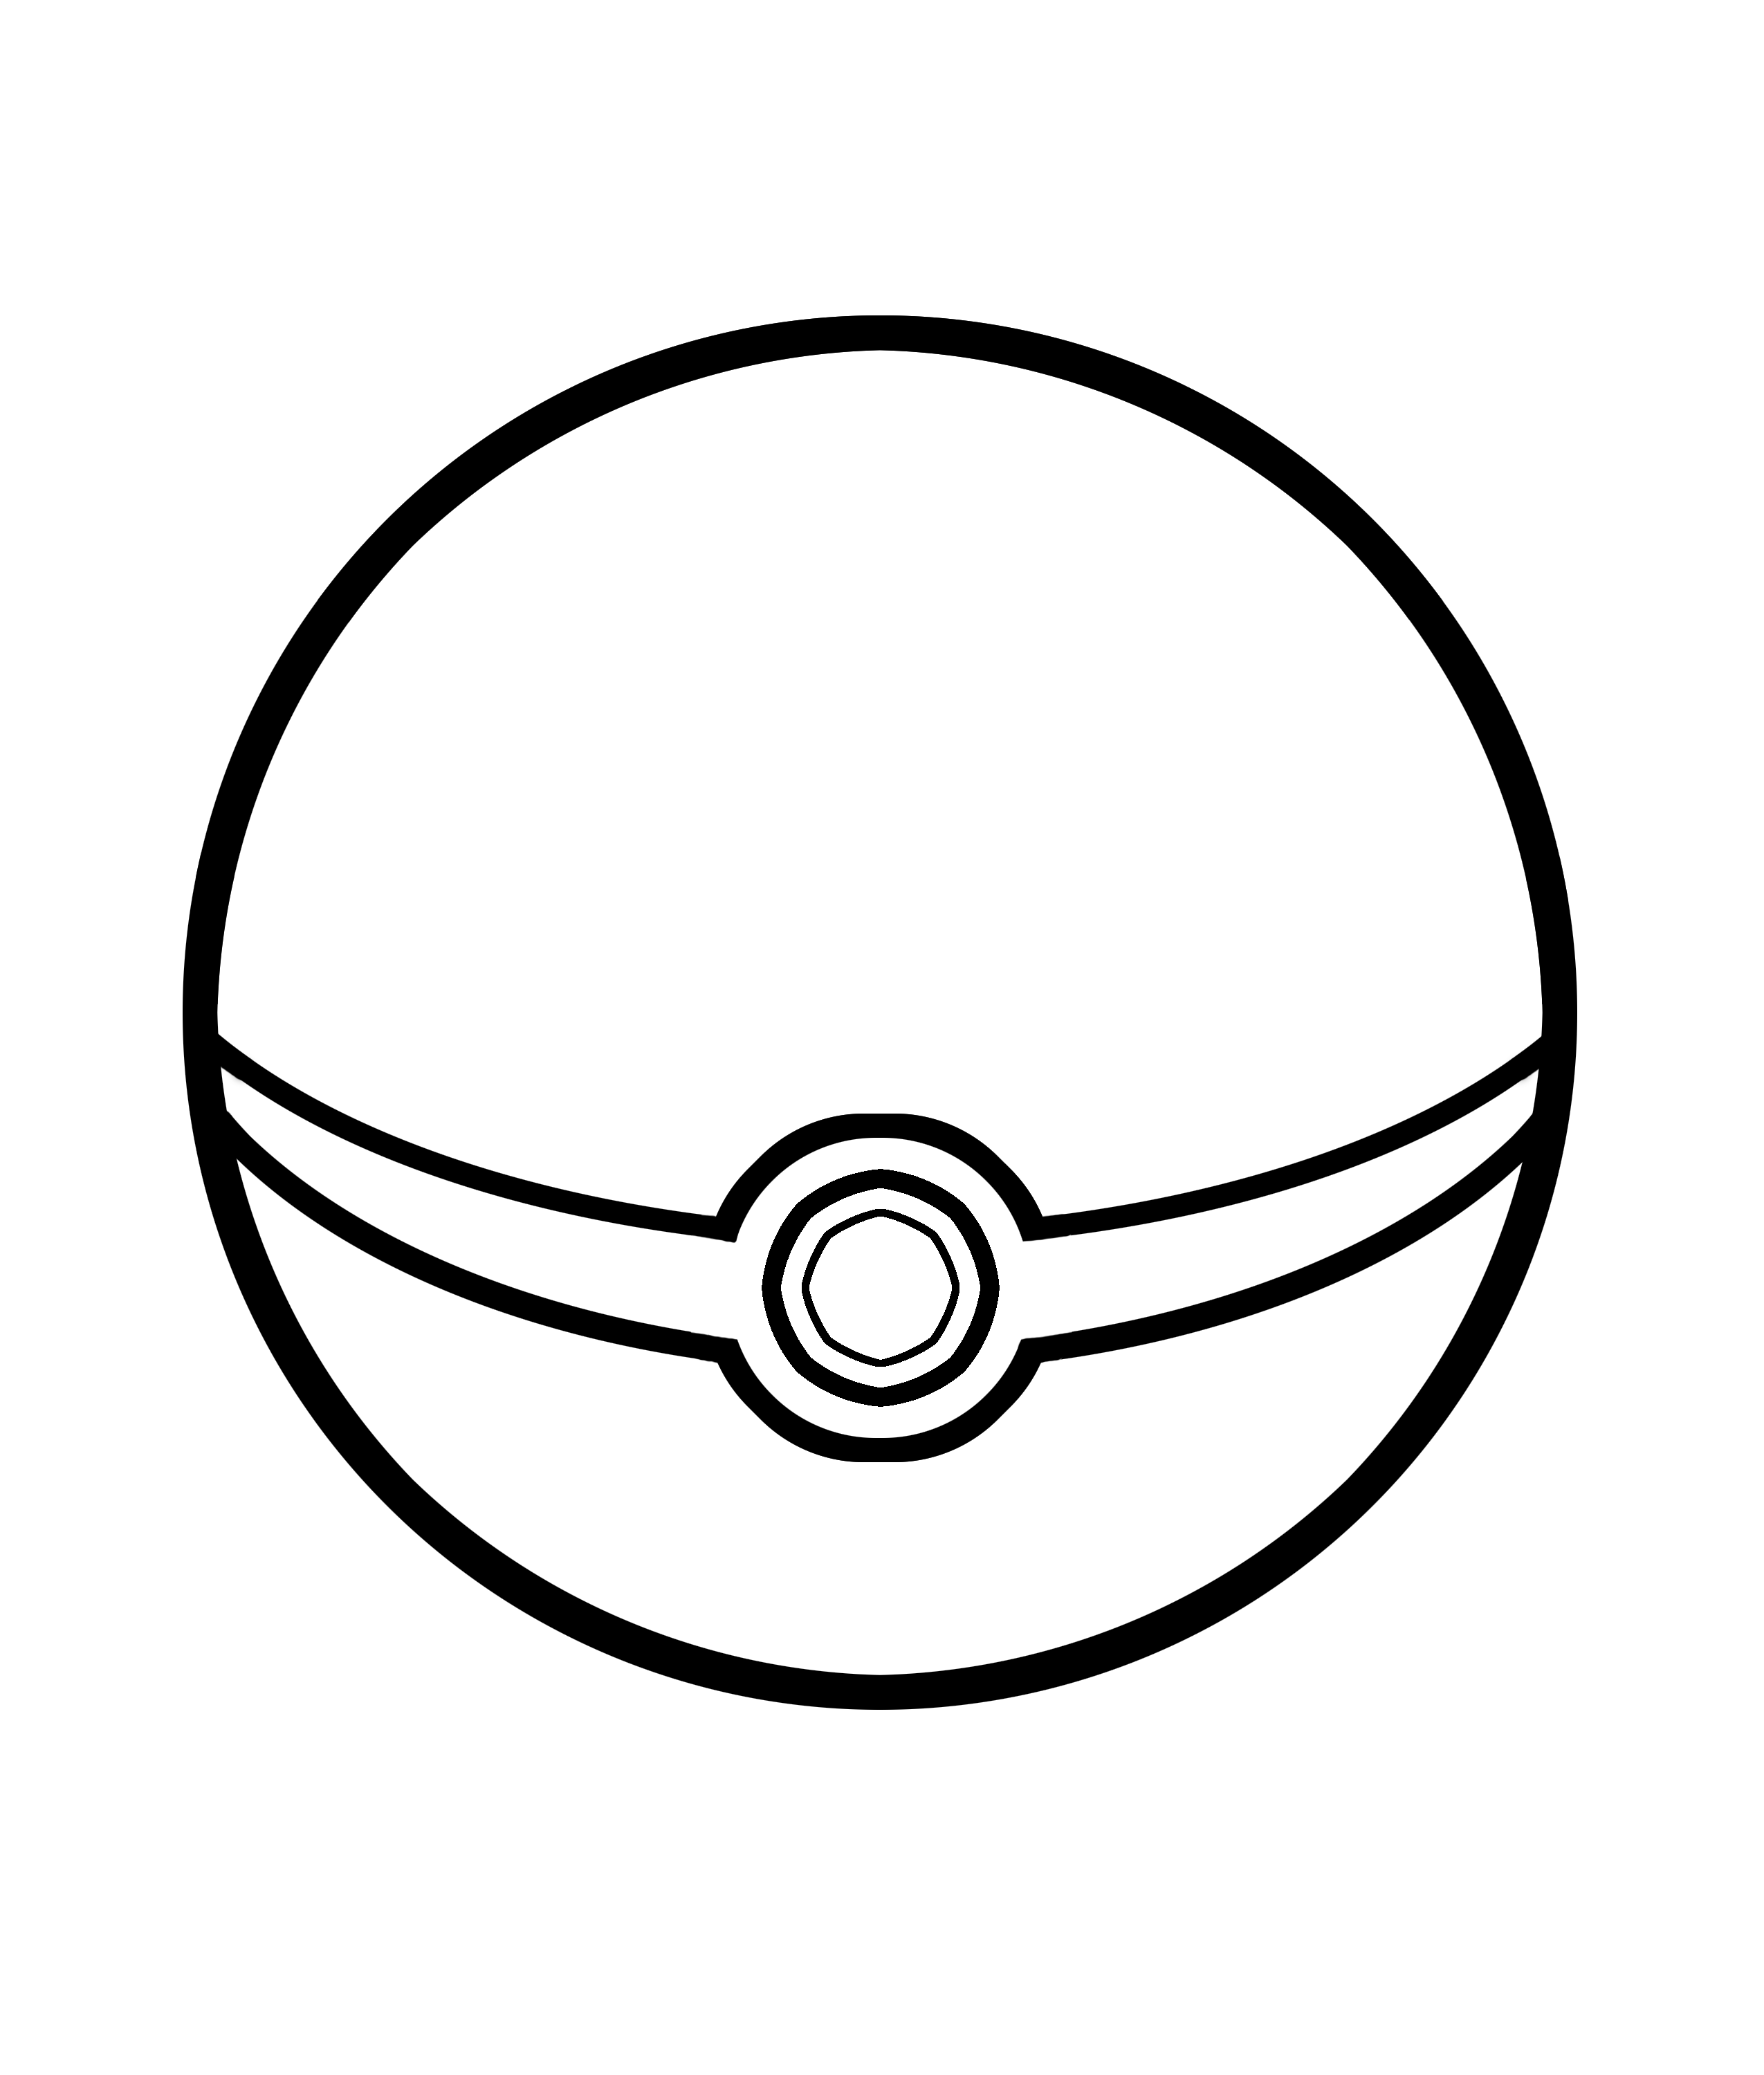 Drawn pokeball line drawing Ball Pokemon Pages Pokemon Coloring